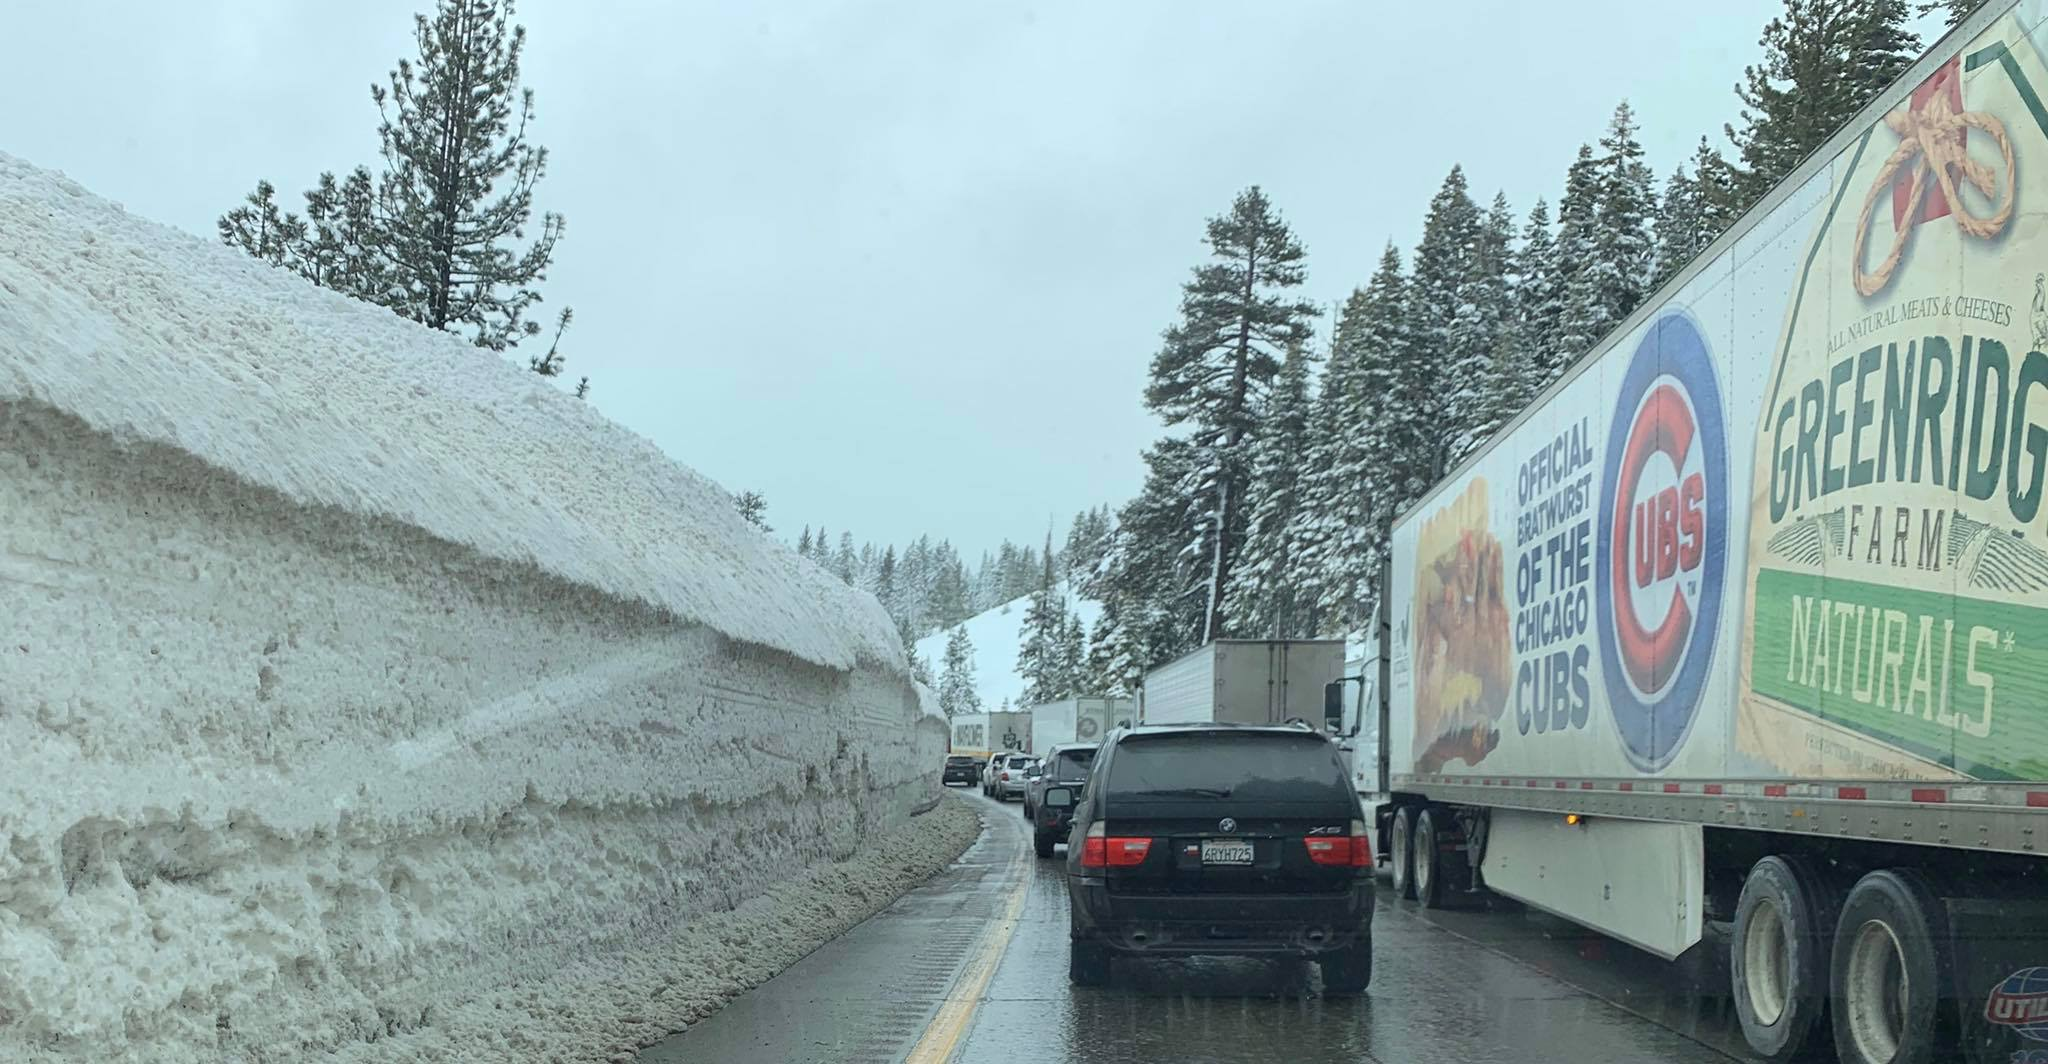 Vehicles drive through Interstate 80 in the Donner Pass area of the Sierra Nevada west of Truckee on Feb. 28, 2019. (Credit: California Highway Patrol Truckee Division/ Facebook)